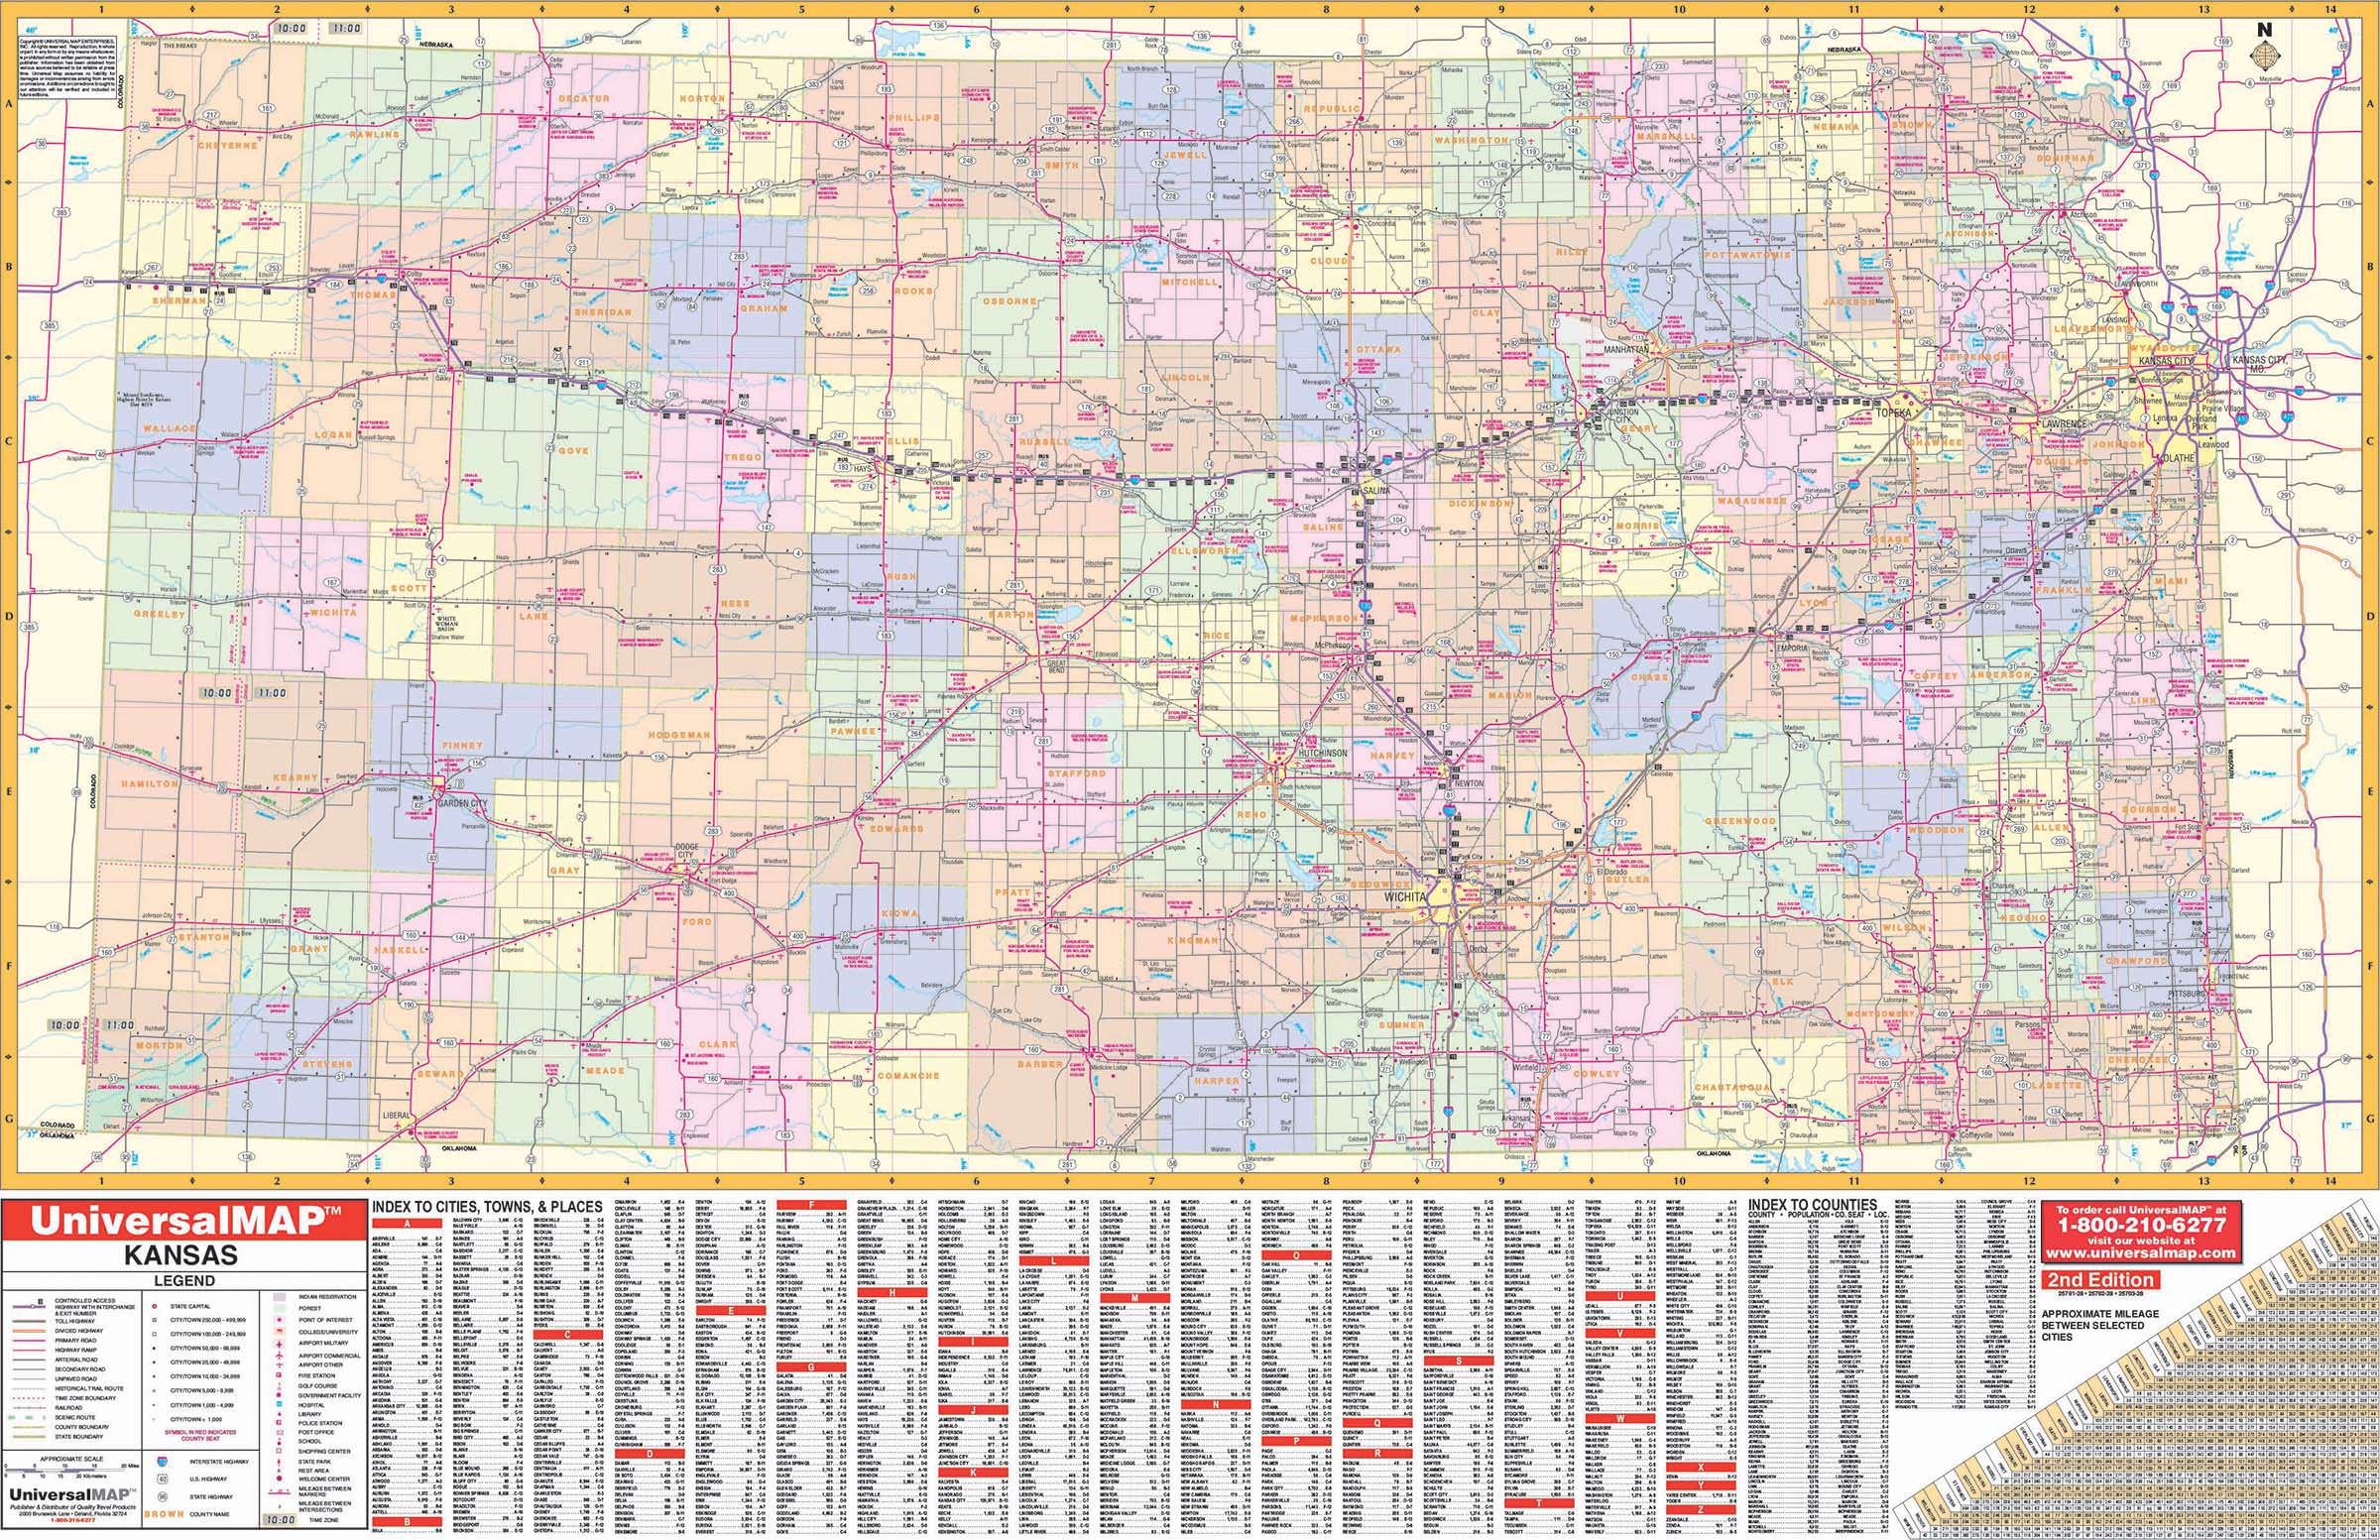 Kansas State Wall Map – KAPPA MAP GROUP on missouri map, kansas small town map, printable kansas map, kansas interstate map, kansas elevation map, the state map, usa map, herington kansas map, colorado map, kansas lakes map, arkansas map, kansas counties map, kansas road map, kansas map with all cities, united states map, tennessee state map, kansas us map, oklahoma map, nebraska map, colby kansas map,